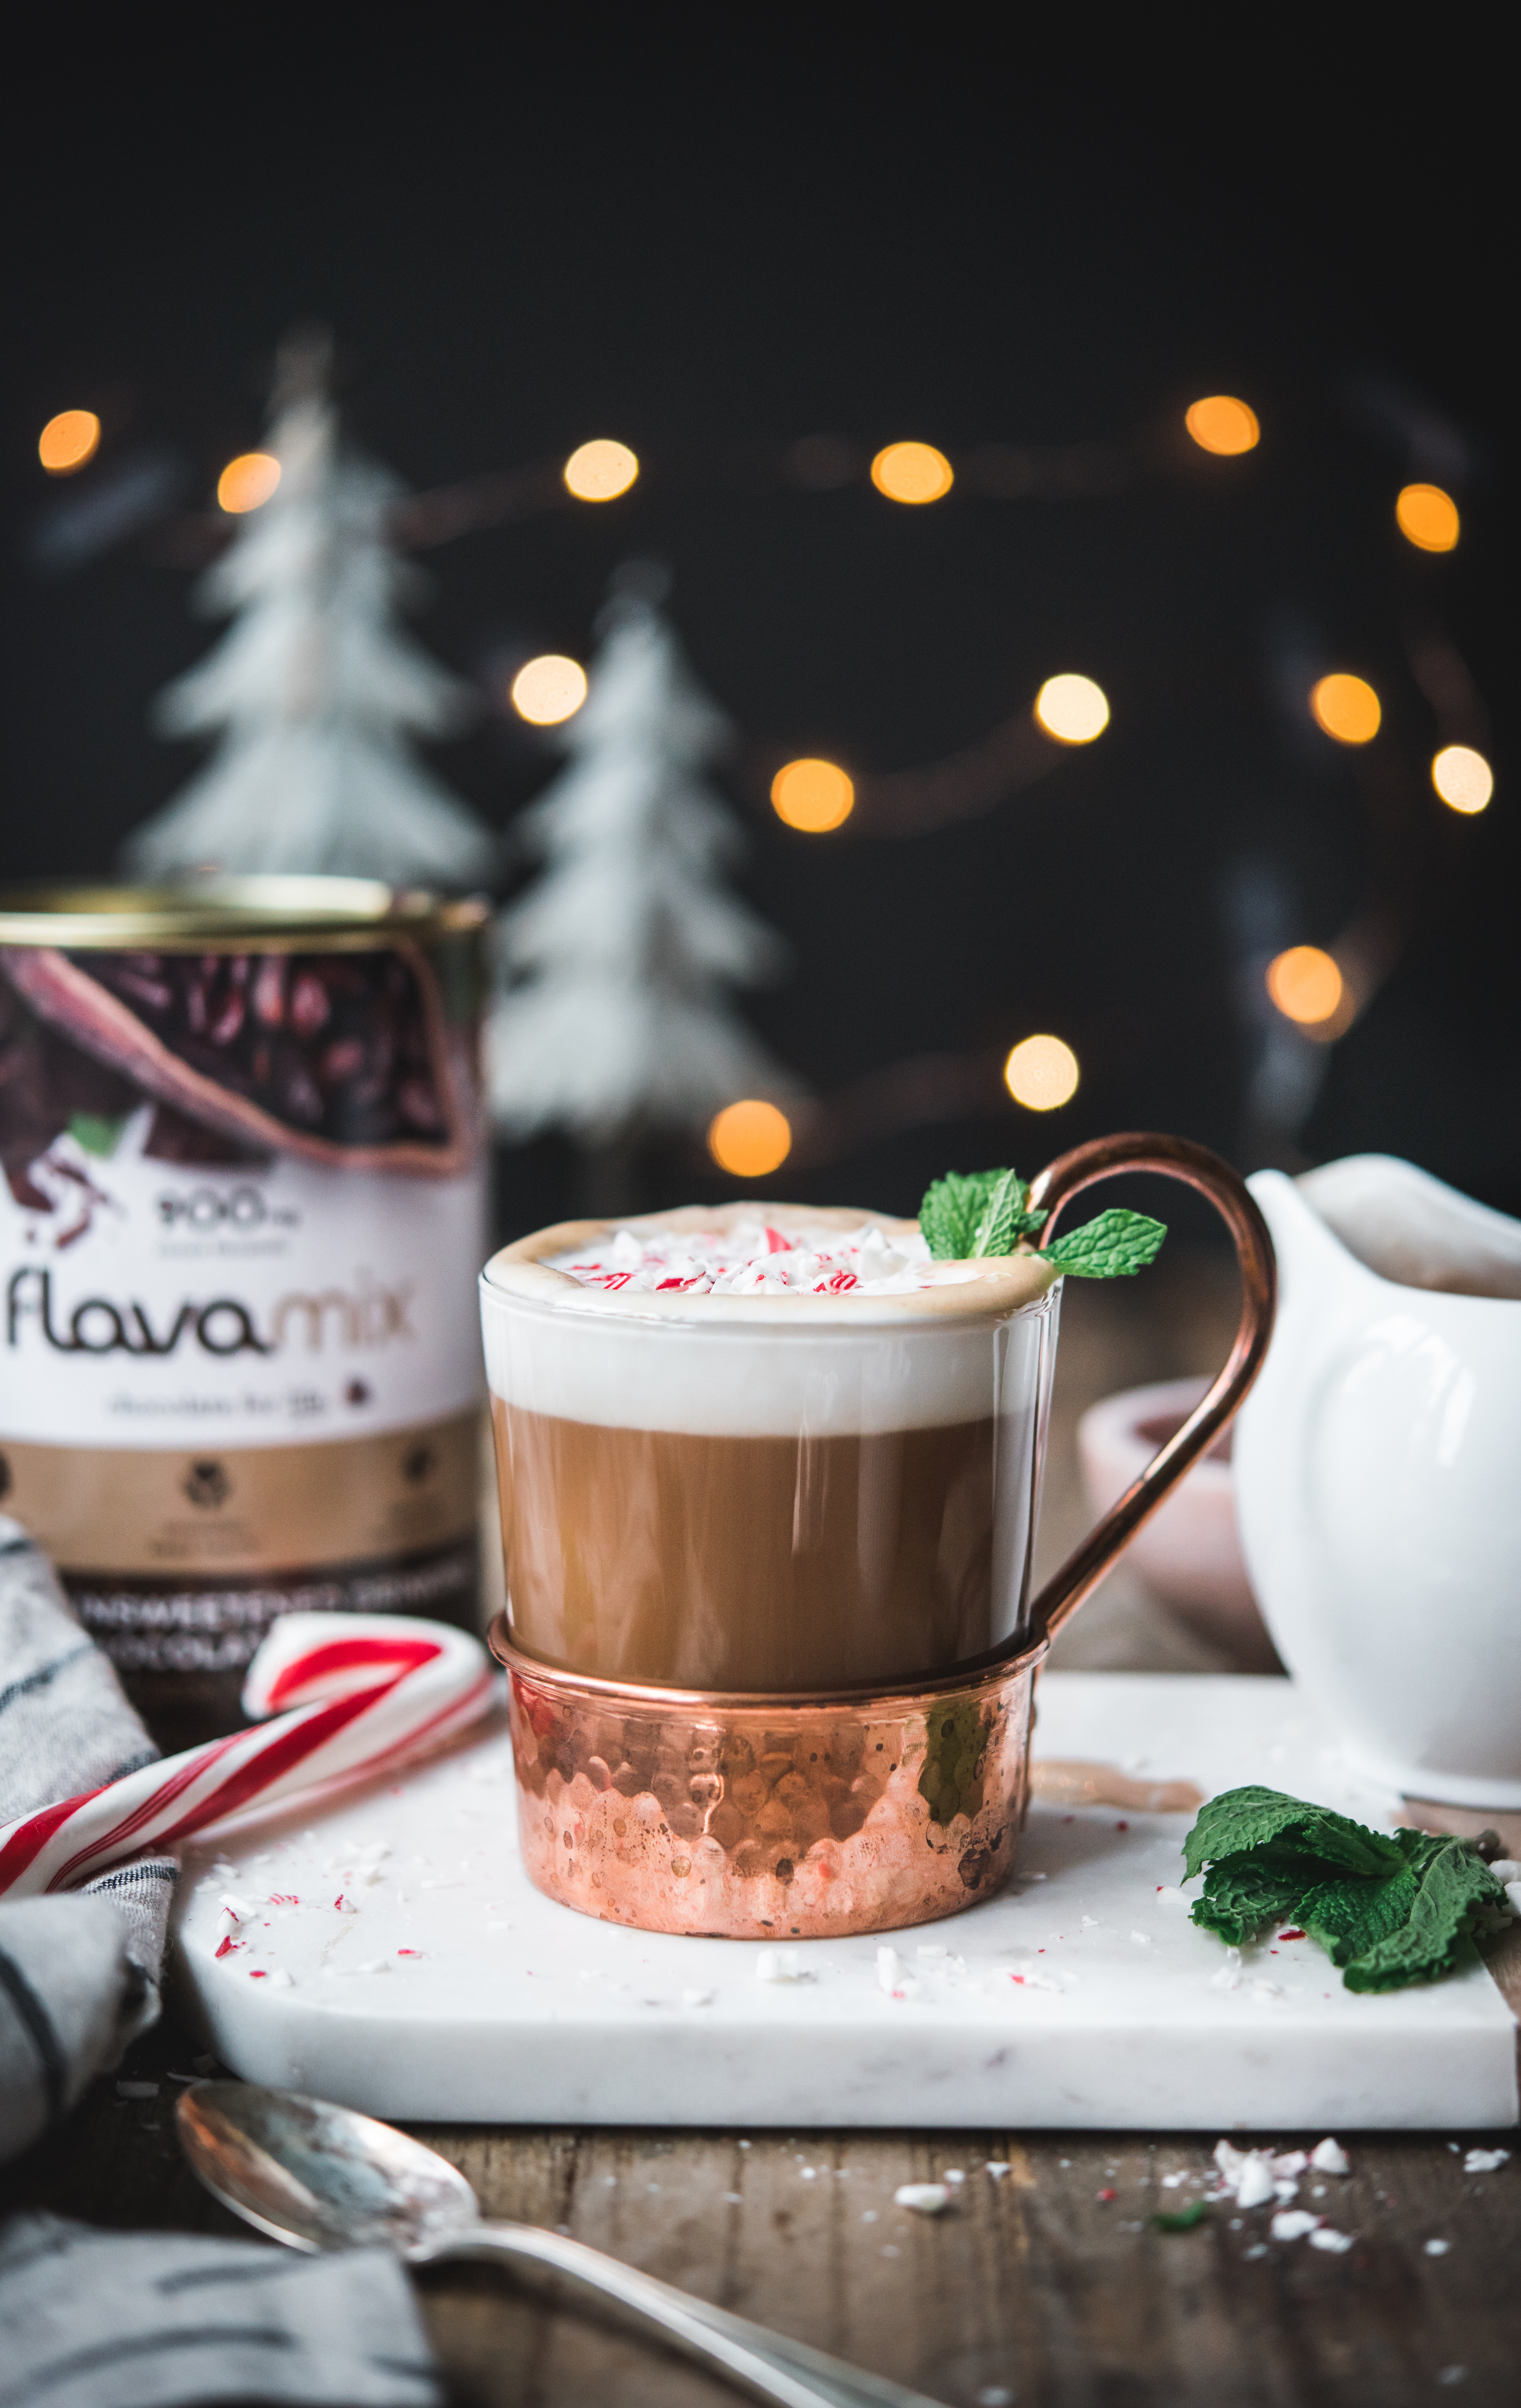 Peppermint Mocha with FlavaMix Unsweetened Drinking Chocolate